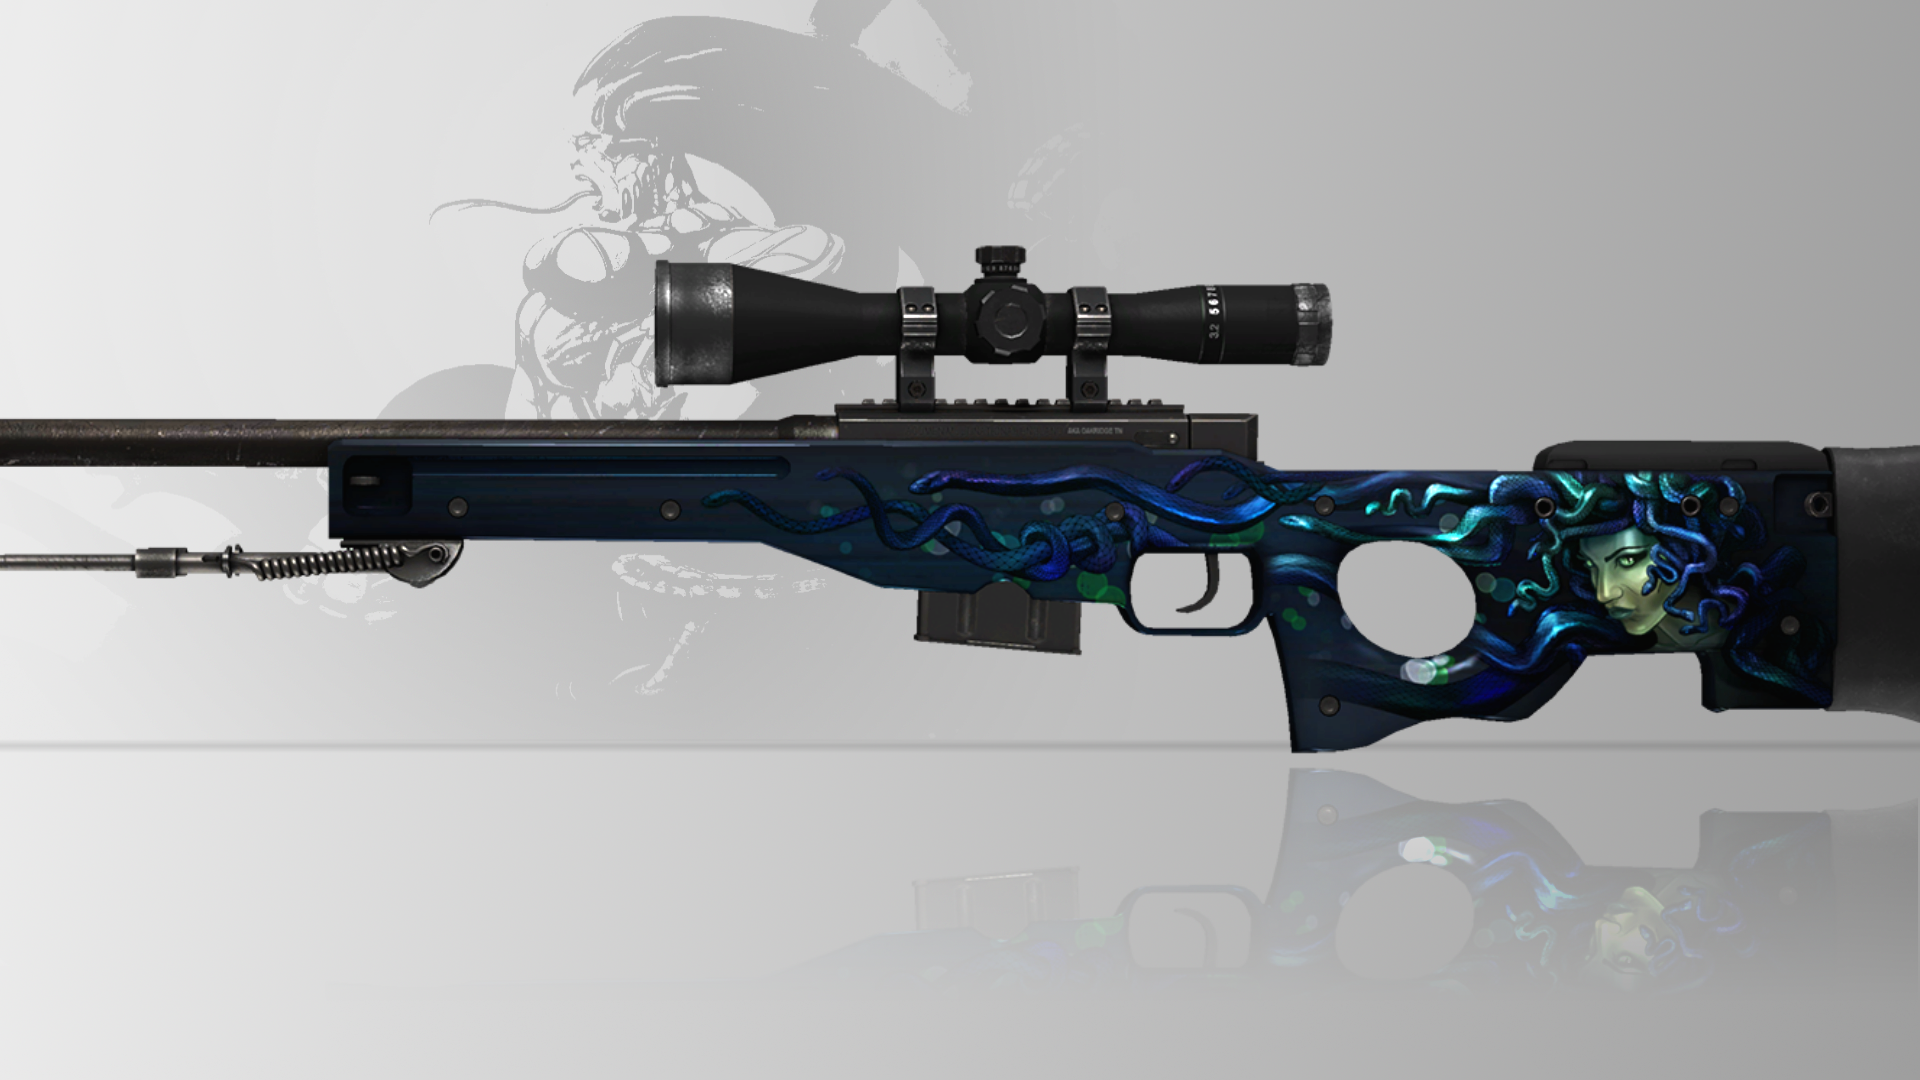 Random weapon AWP CS:GO